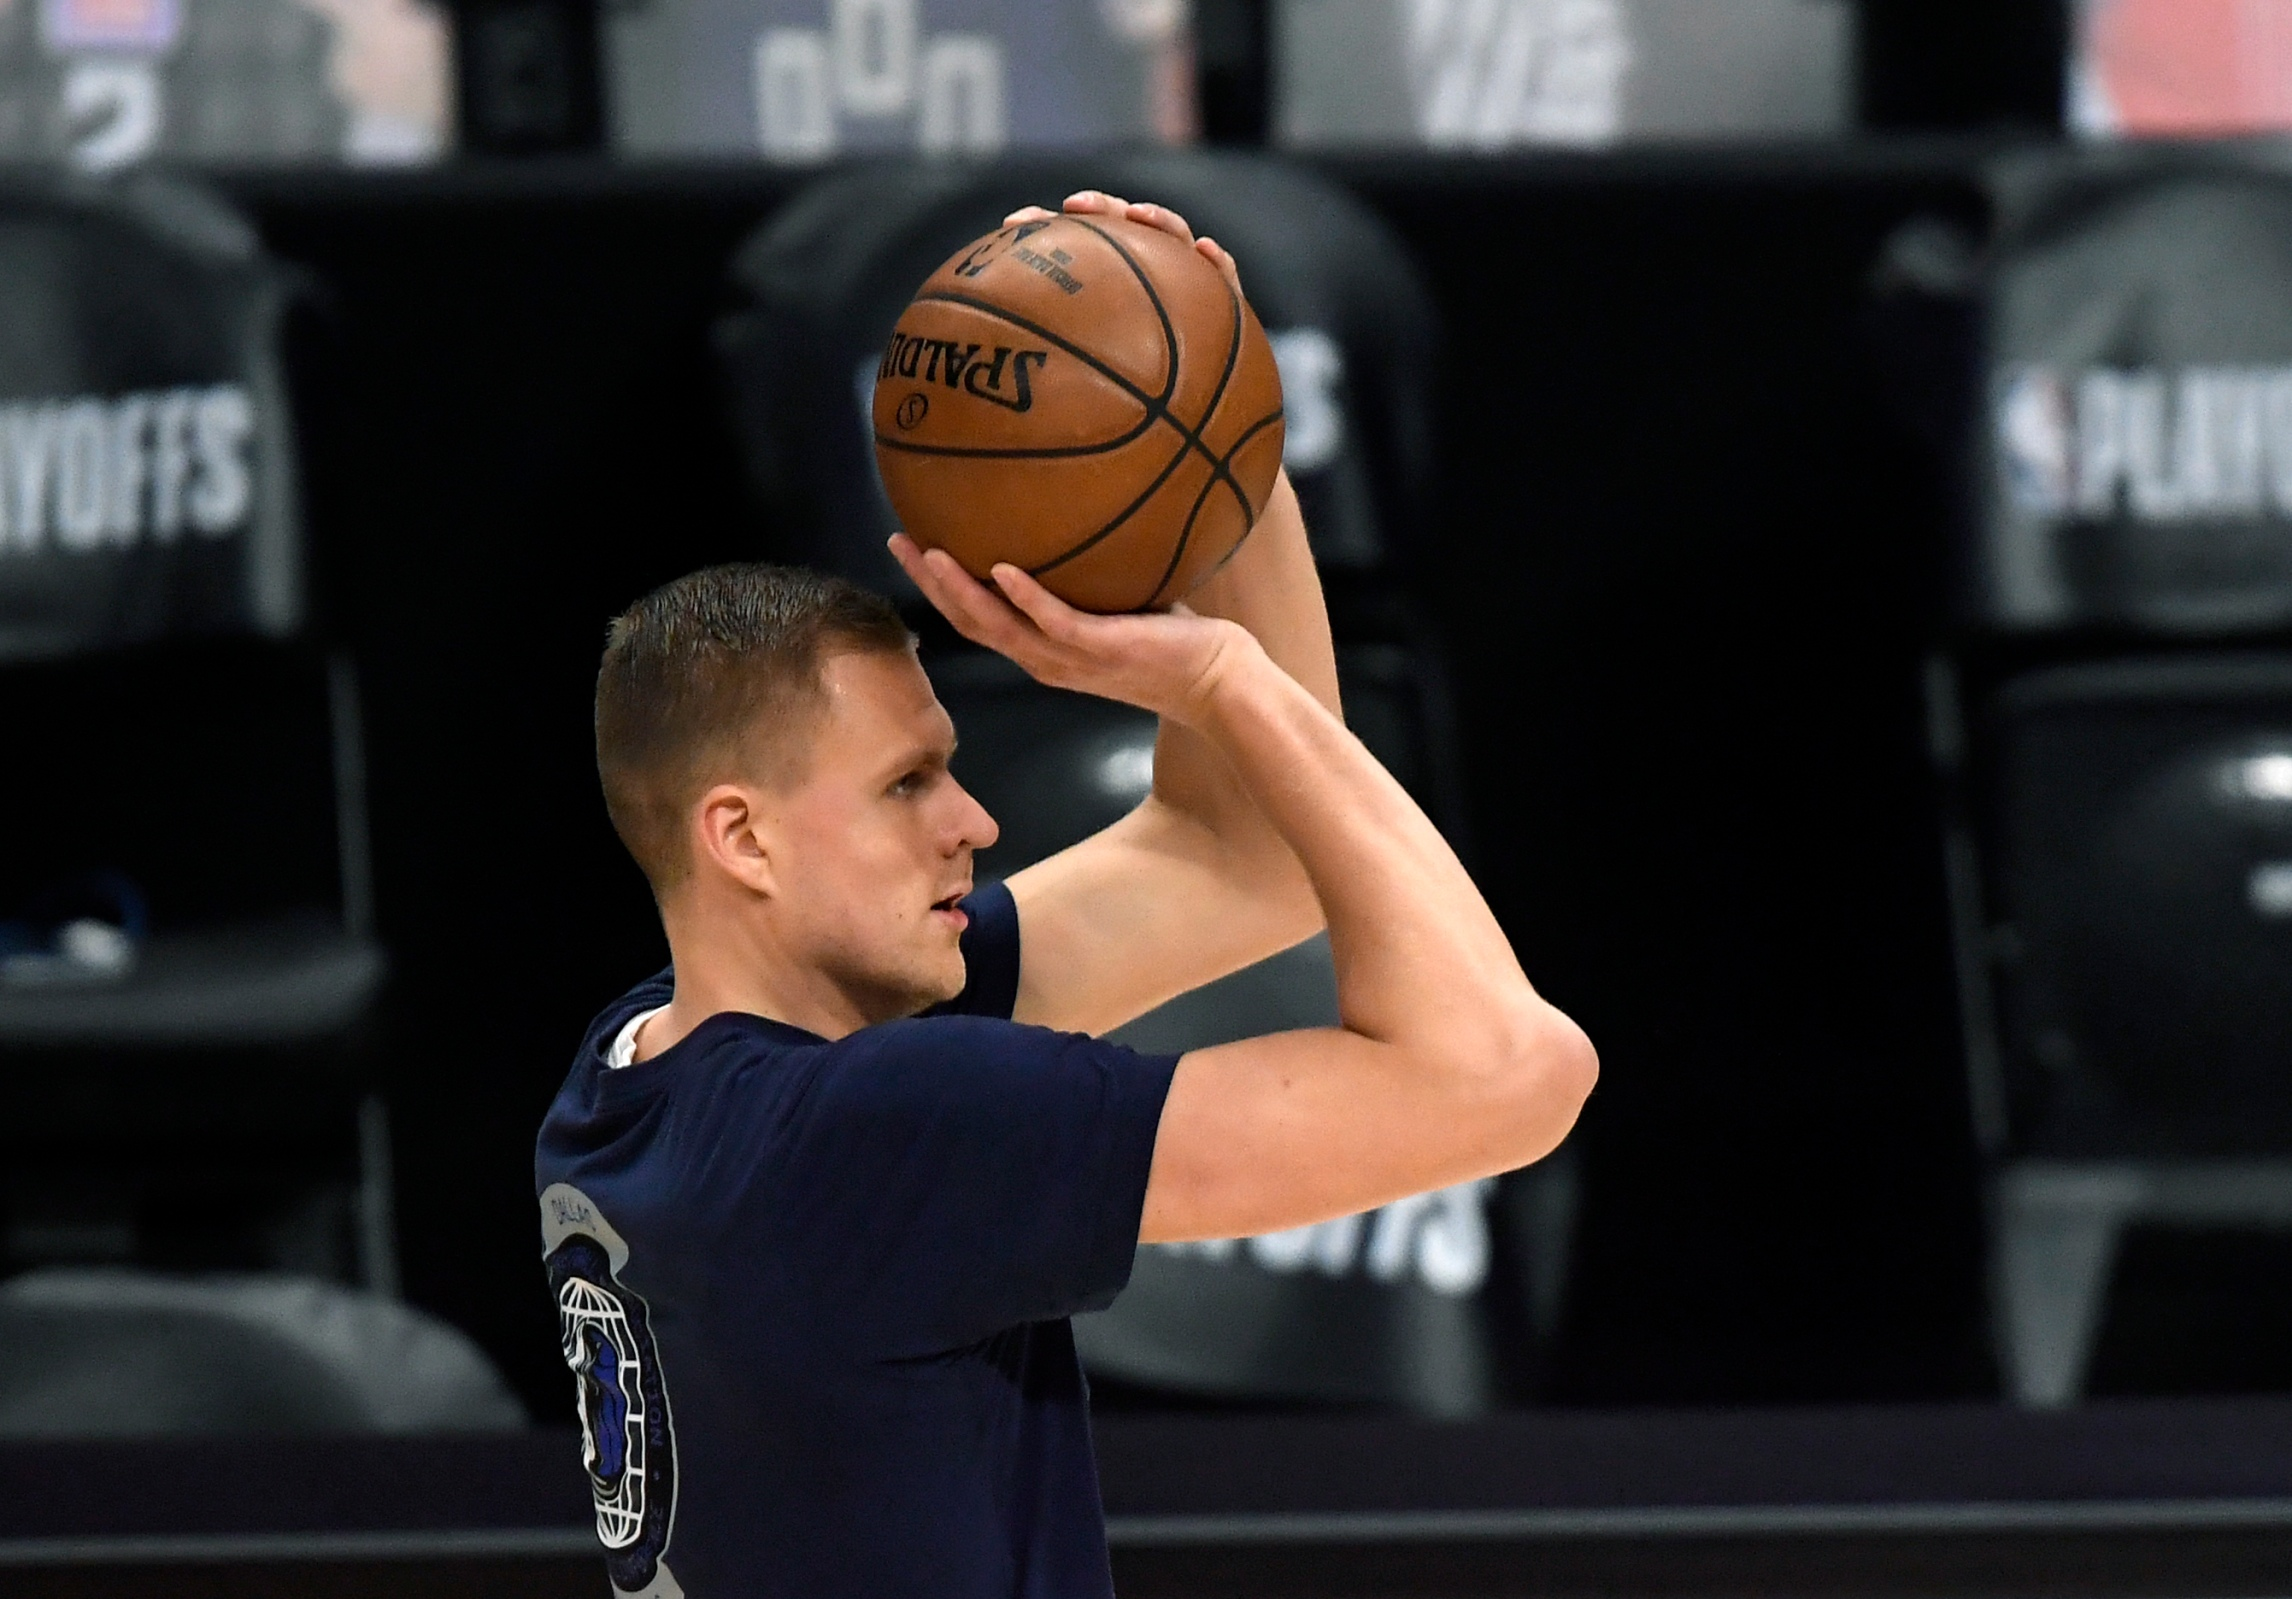 Kristaps Porzingis shoots warmup jumpers prior to the start of Game 7 against the Clippers.